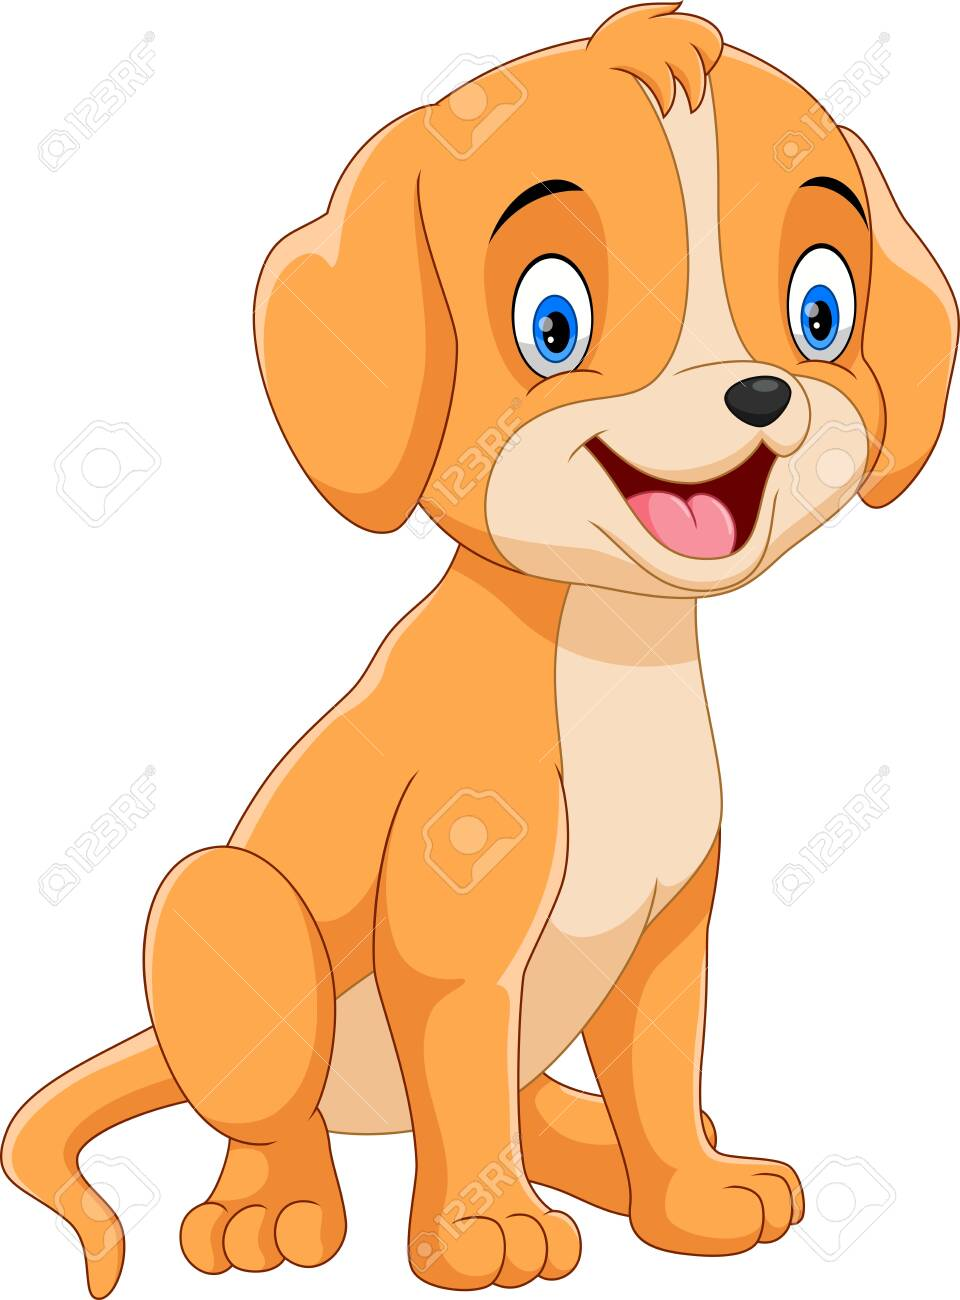 Vector illustration of cute and adorable dog cartoon isolated on white background - 123744208